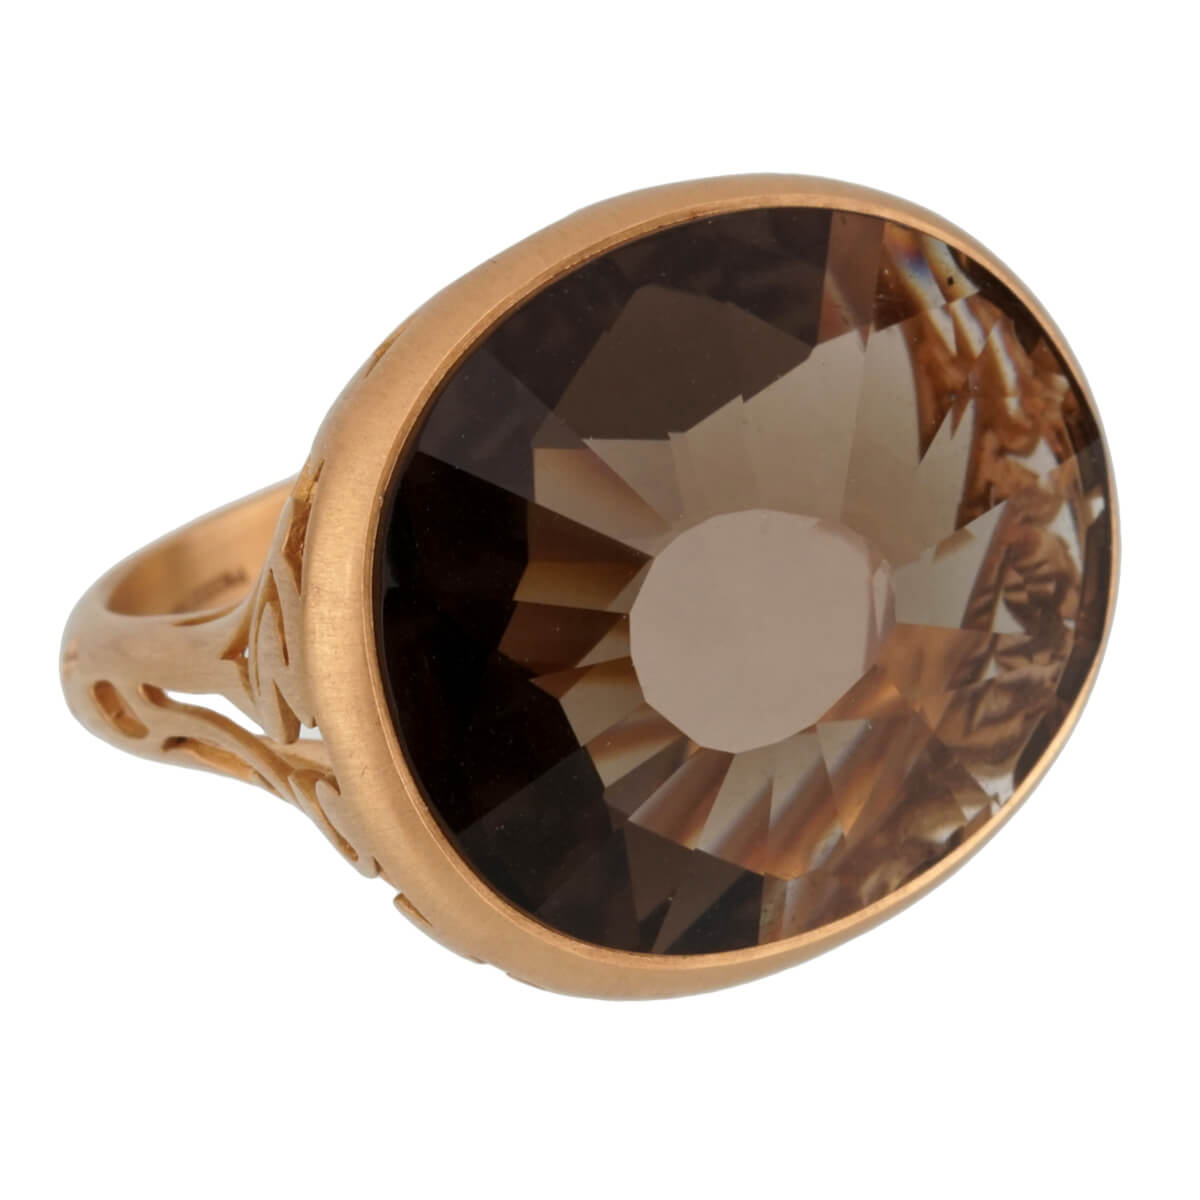 Pomellato 10 Carat Smoky Quartz Cocktail Rose Gold Ring Sz 7 1/2